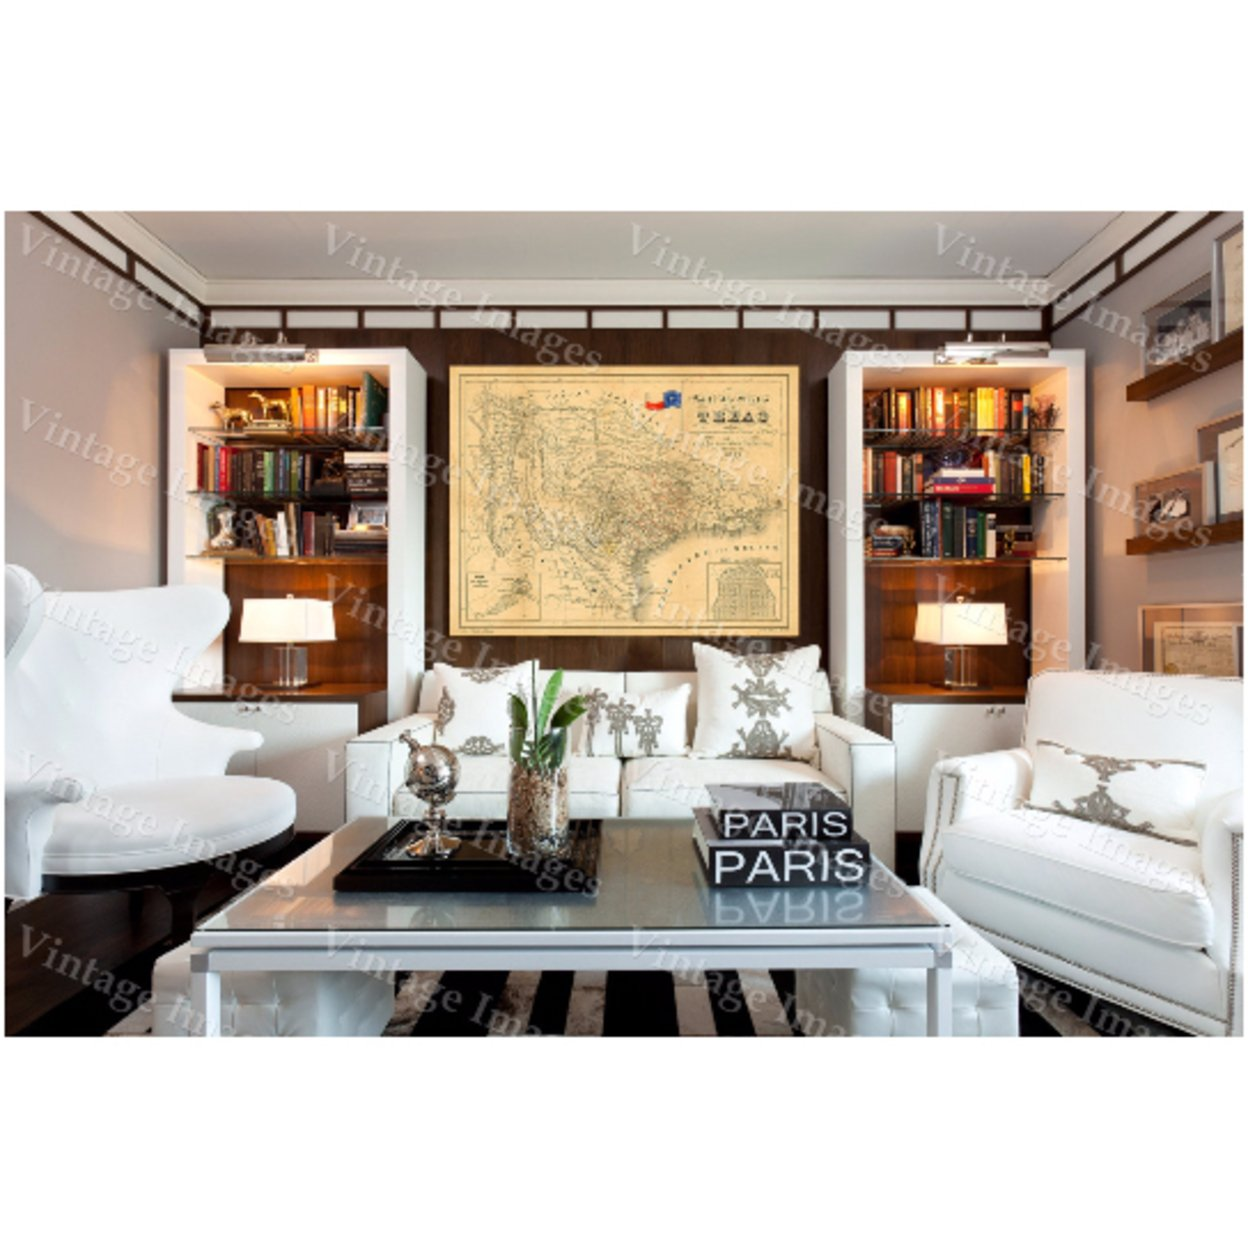 """Texas Map 1849 Map of Texas, Texas, Old Map of Texas, Vintage Map, Restoration Hardware Style Texas Wall art German Map Of Texas Wall Decor - 16\"""" x 20\"""" inches [$18.00] 56d335534c3d6f29578b4d78"""